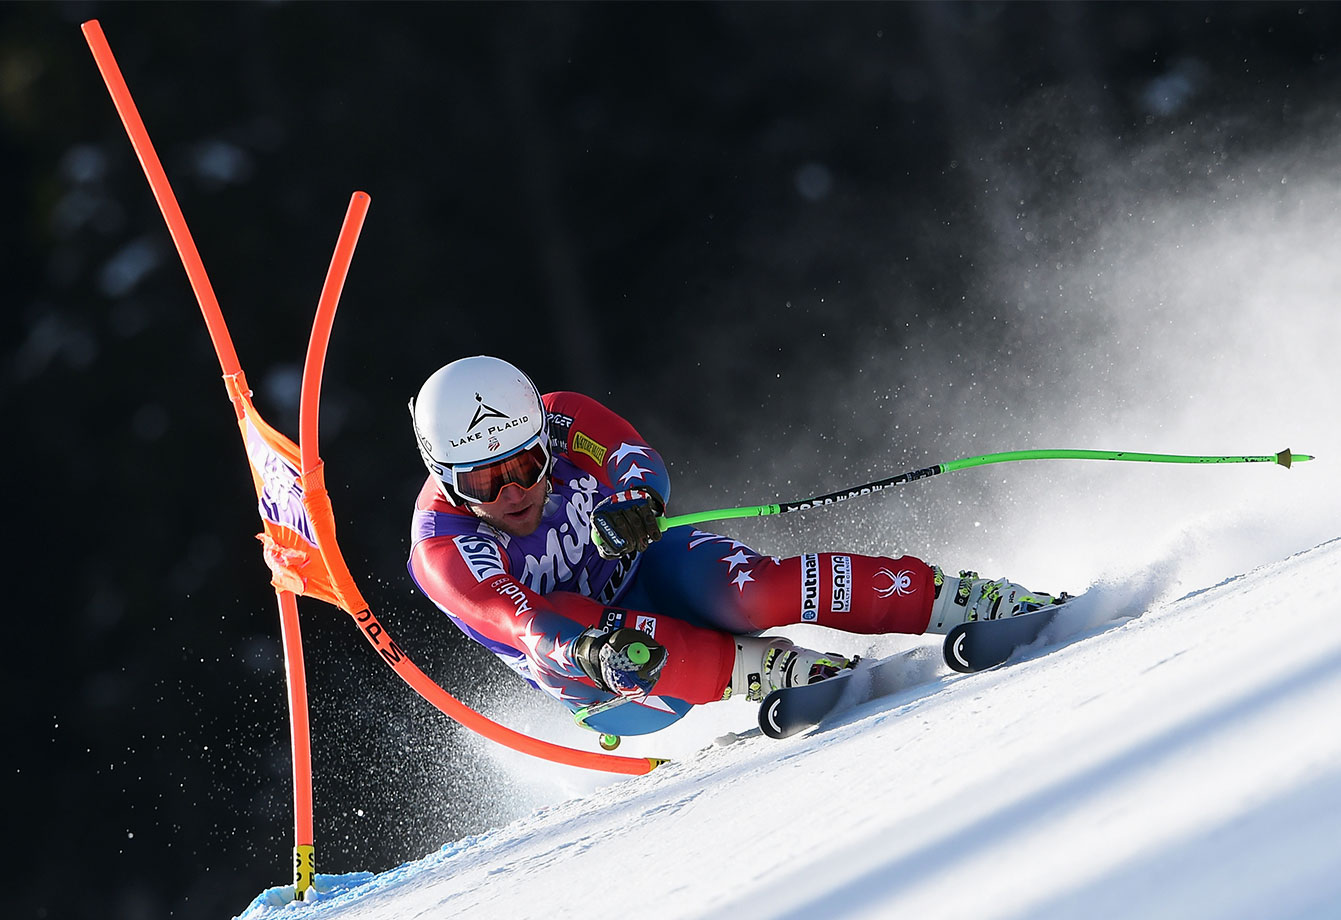 The U.S.'s Andrew Weibrecht competes during the Audi FIS Alpine Ski World Cup men's downhill in Kvitfjell, Norway.